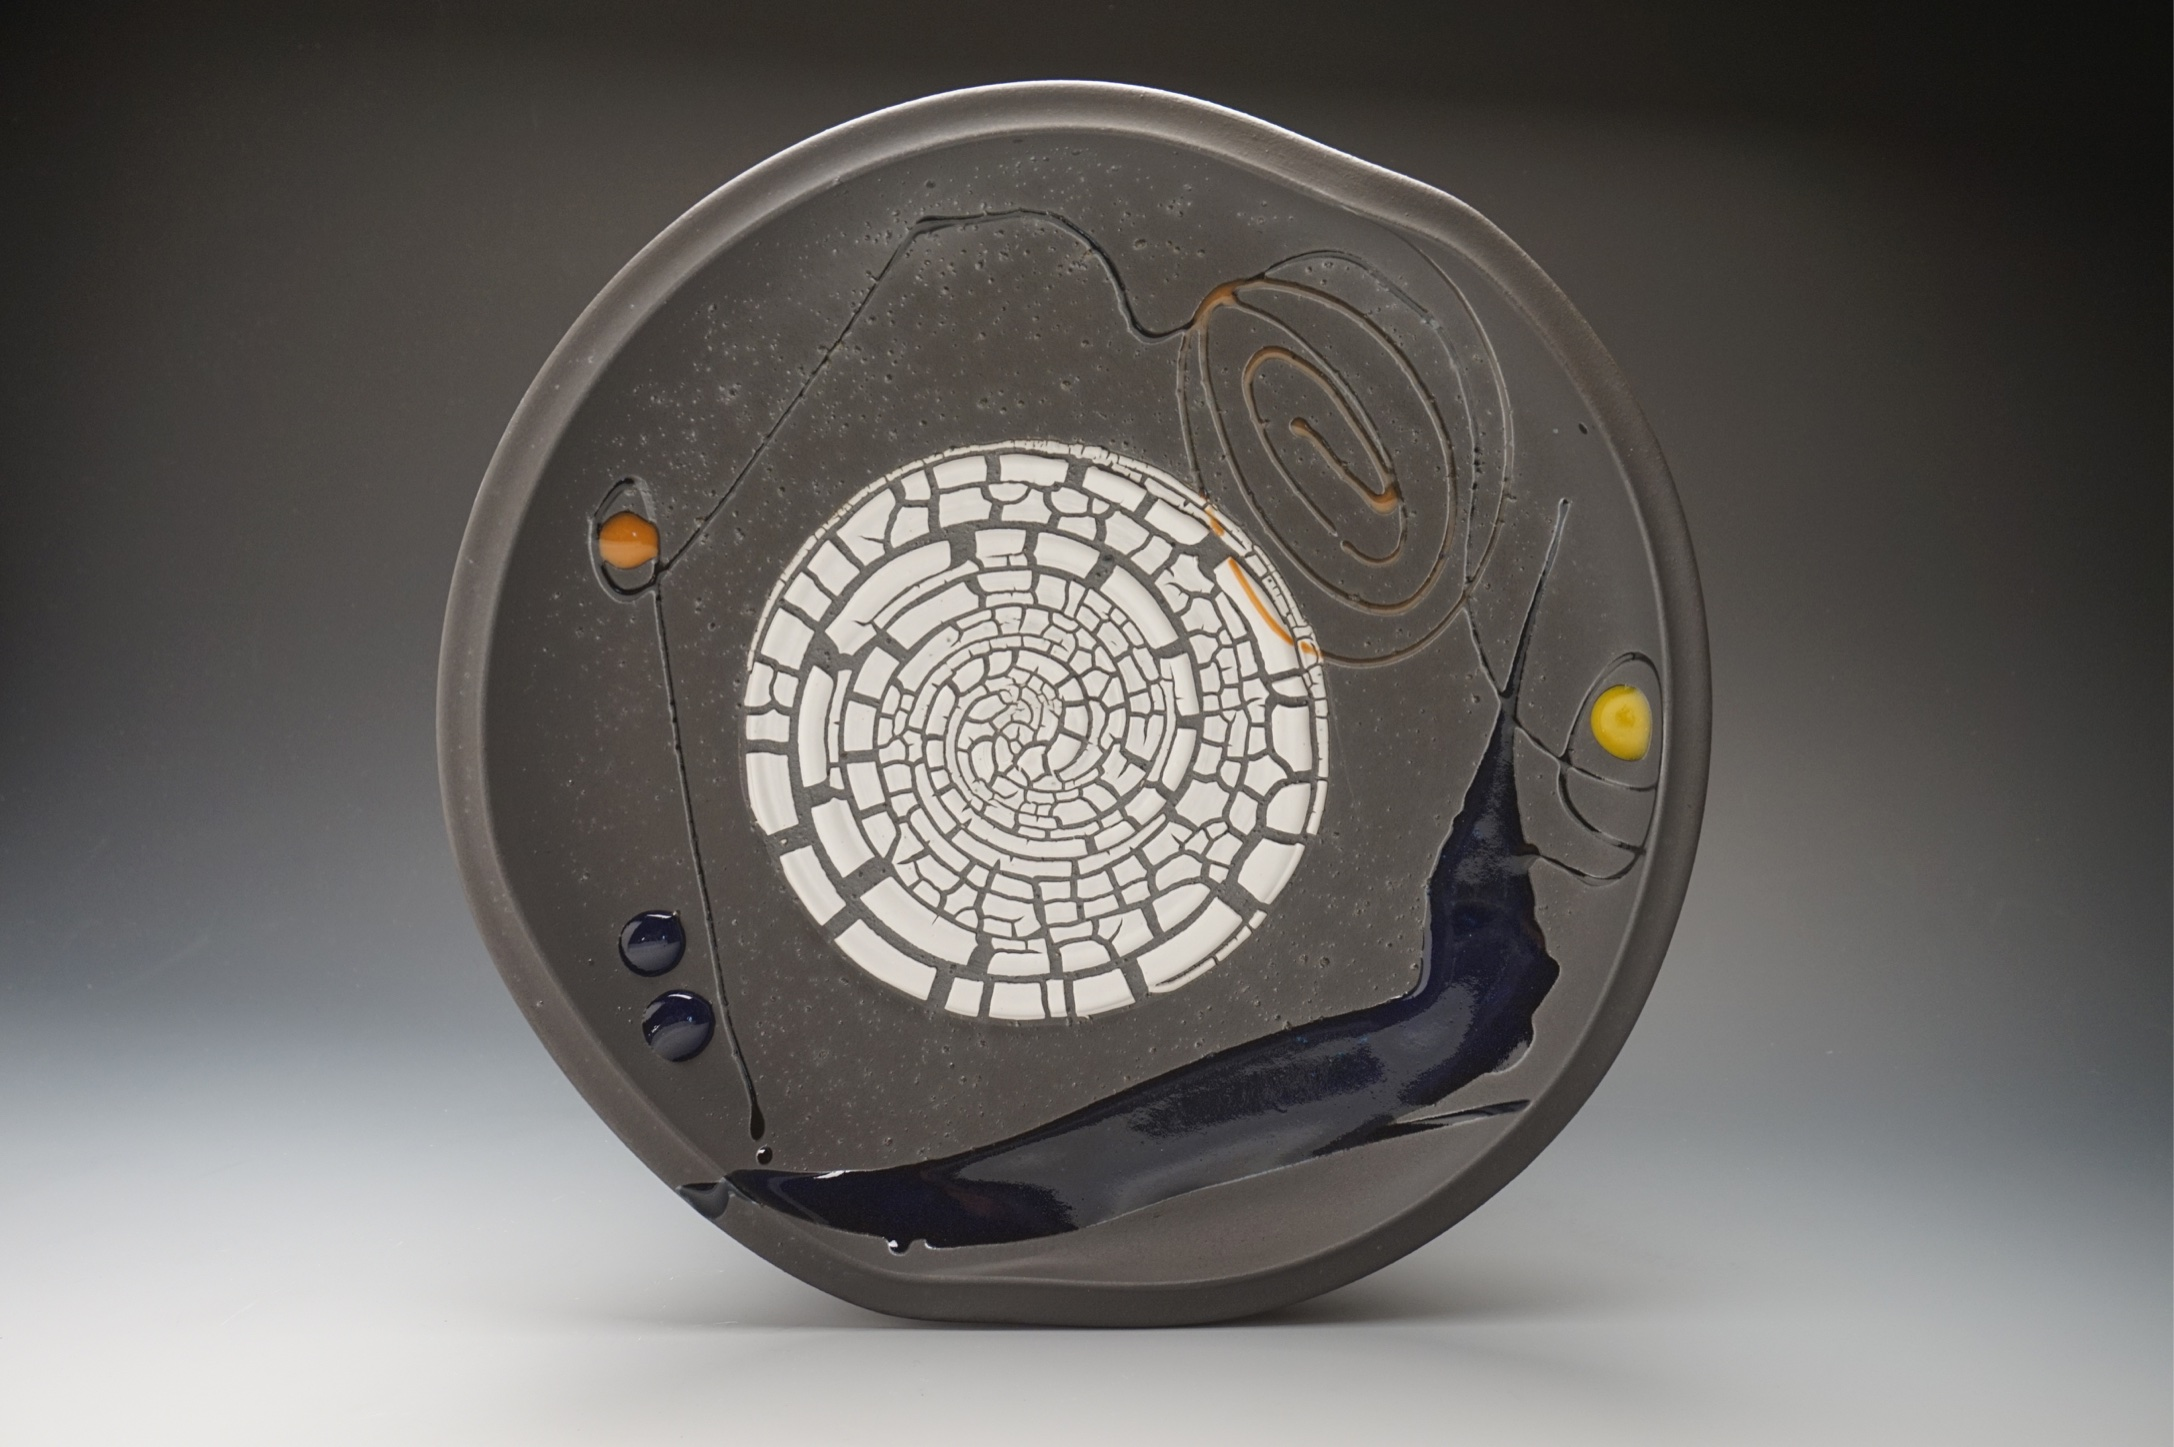 Tom Coleman, Large Plate with White Crackle Glaze, porcelain ceramic vessel, pottery, Sherrie Gallerie